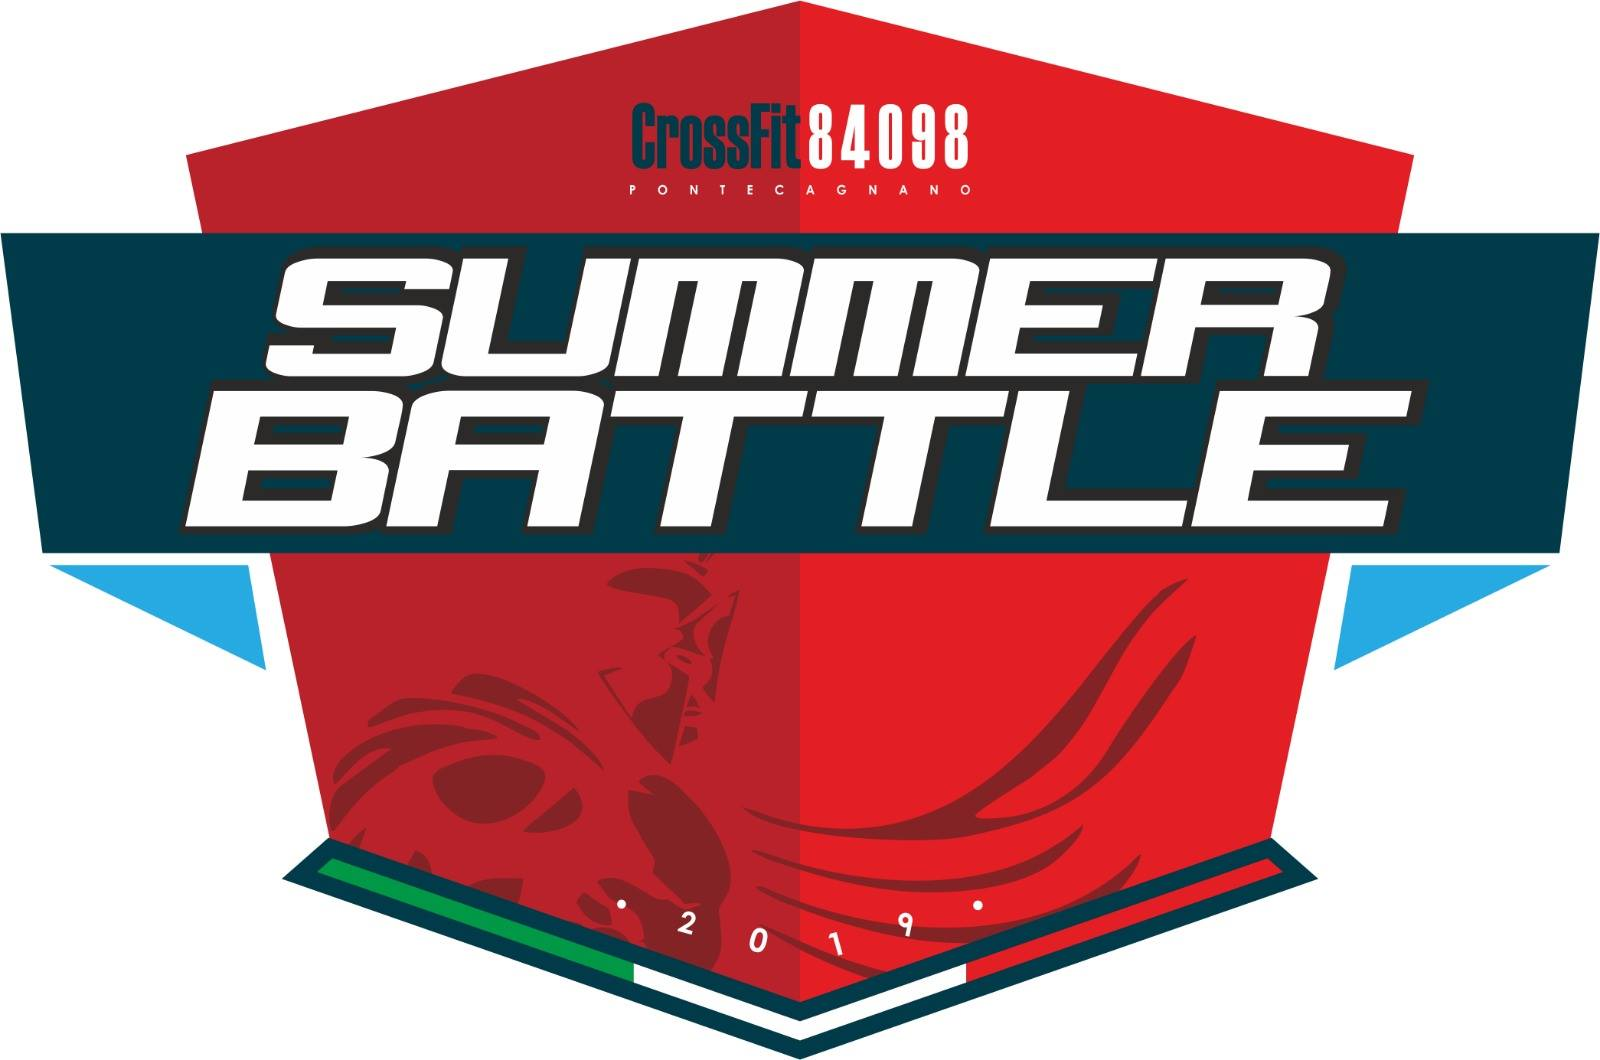 Summer Battle - Crossfit 84098 Pontecagnano, Salerno, Italy - CrossFit Italia | The SunWod - Viaggi e Alloggi